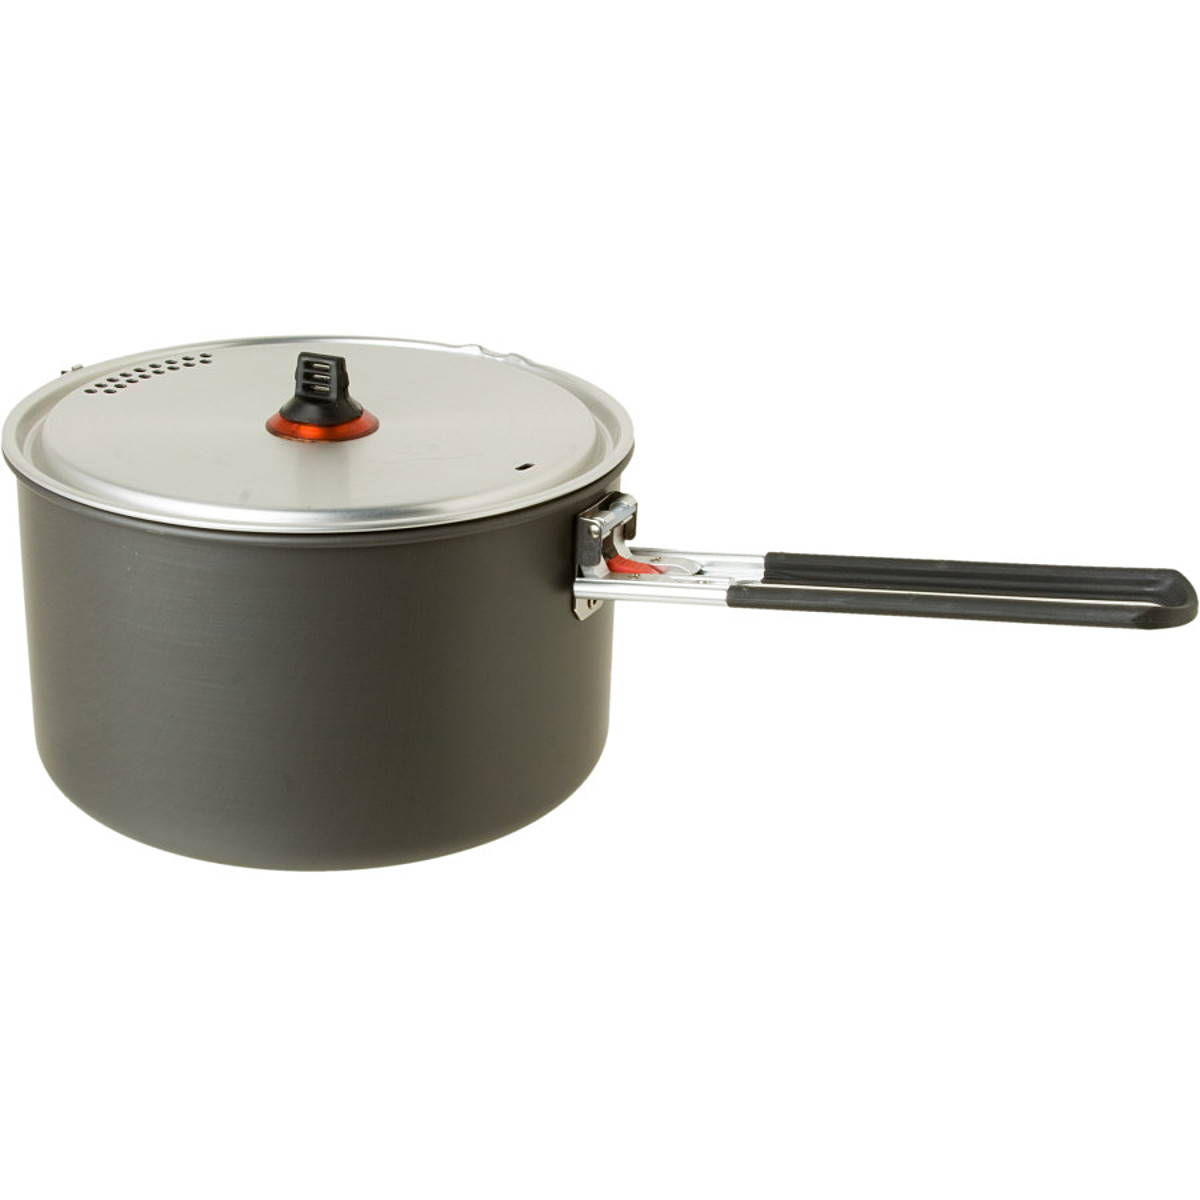 MSR Alpinist 2 Pot Set